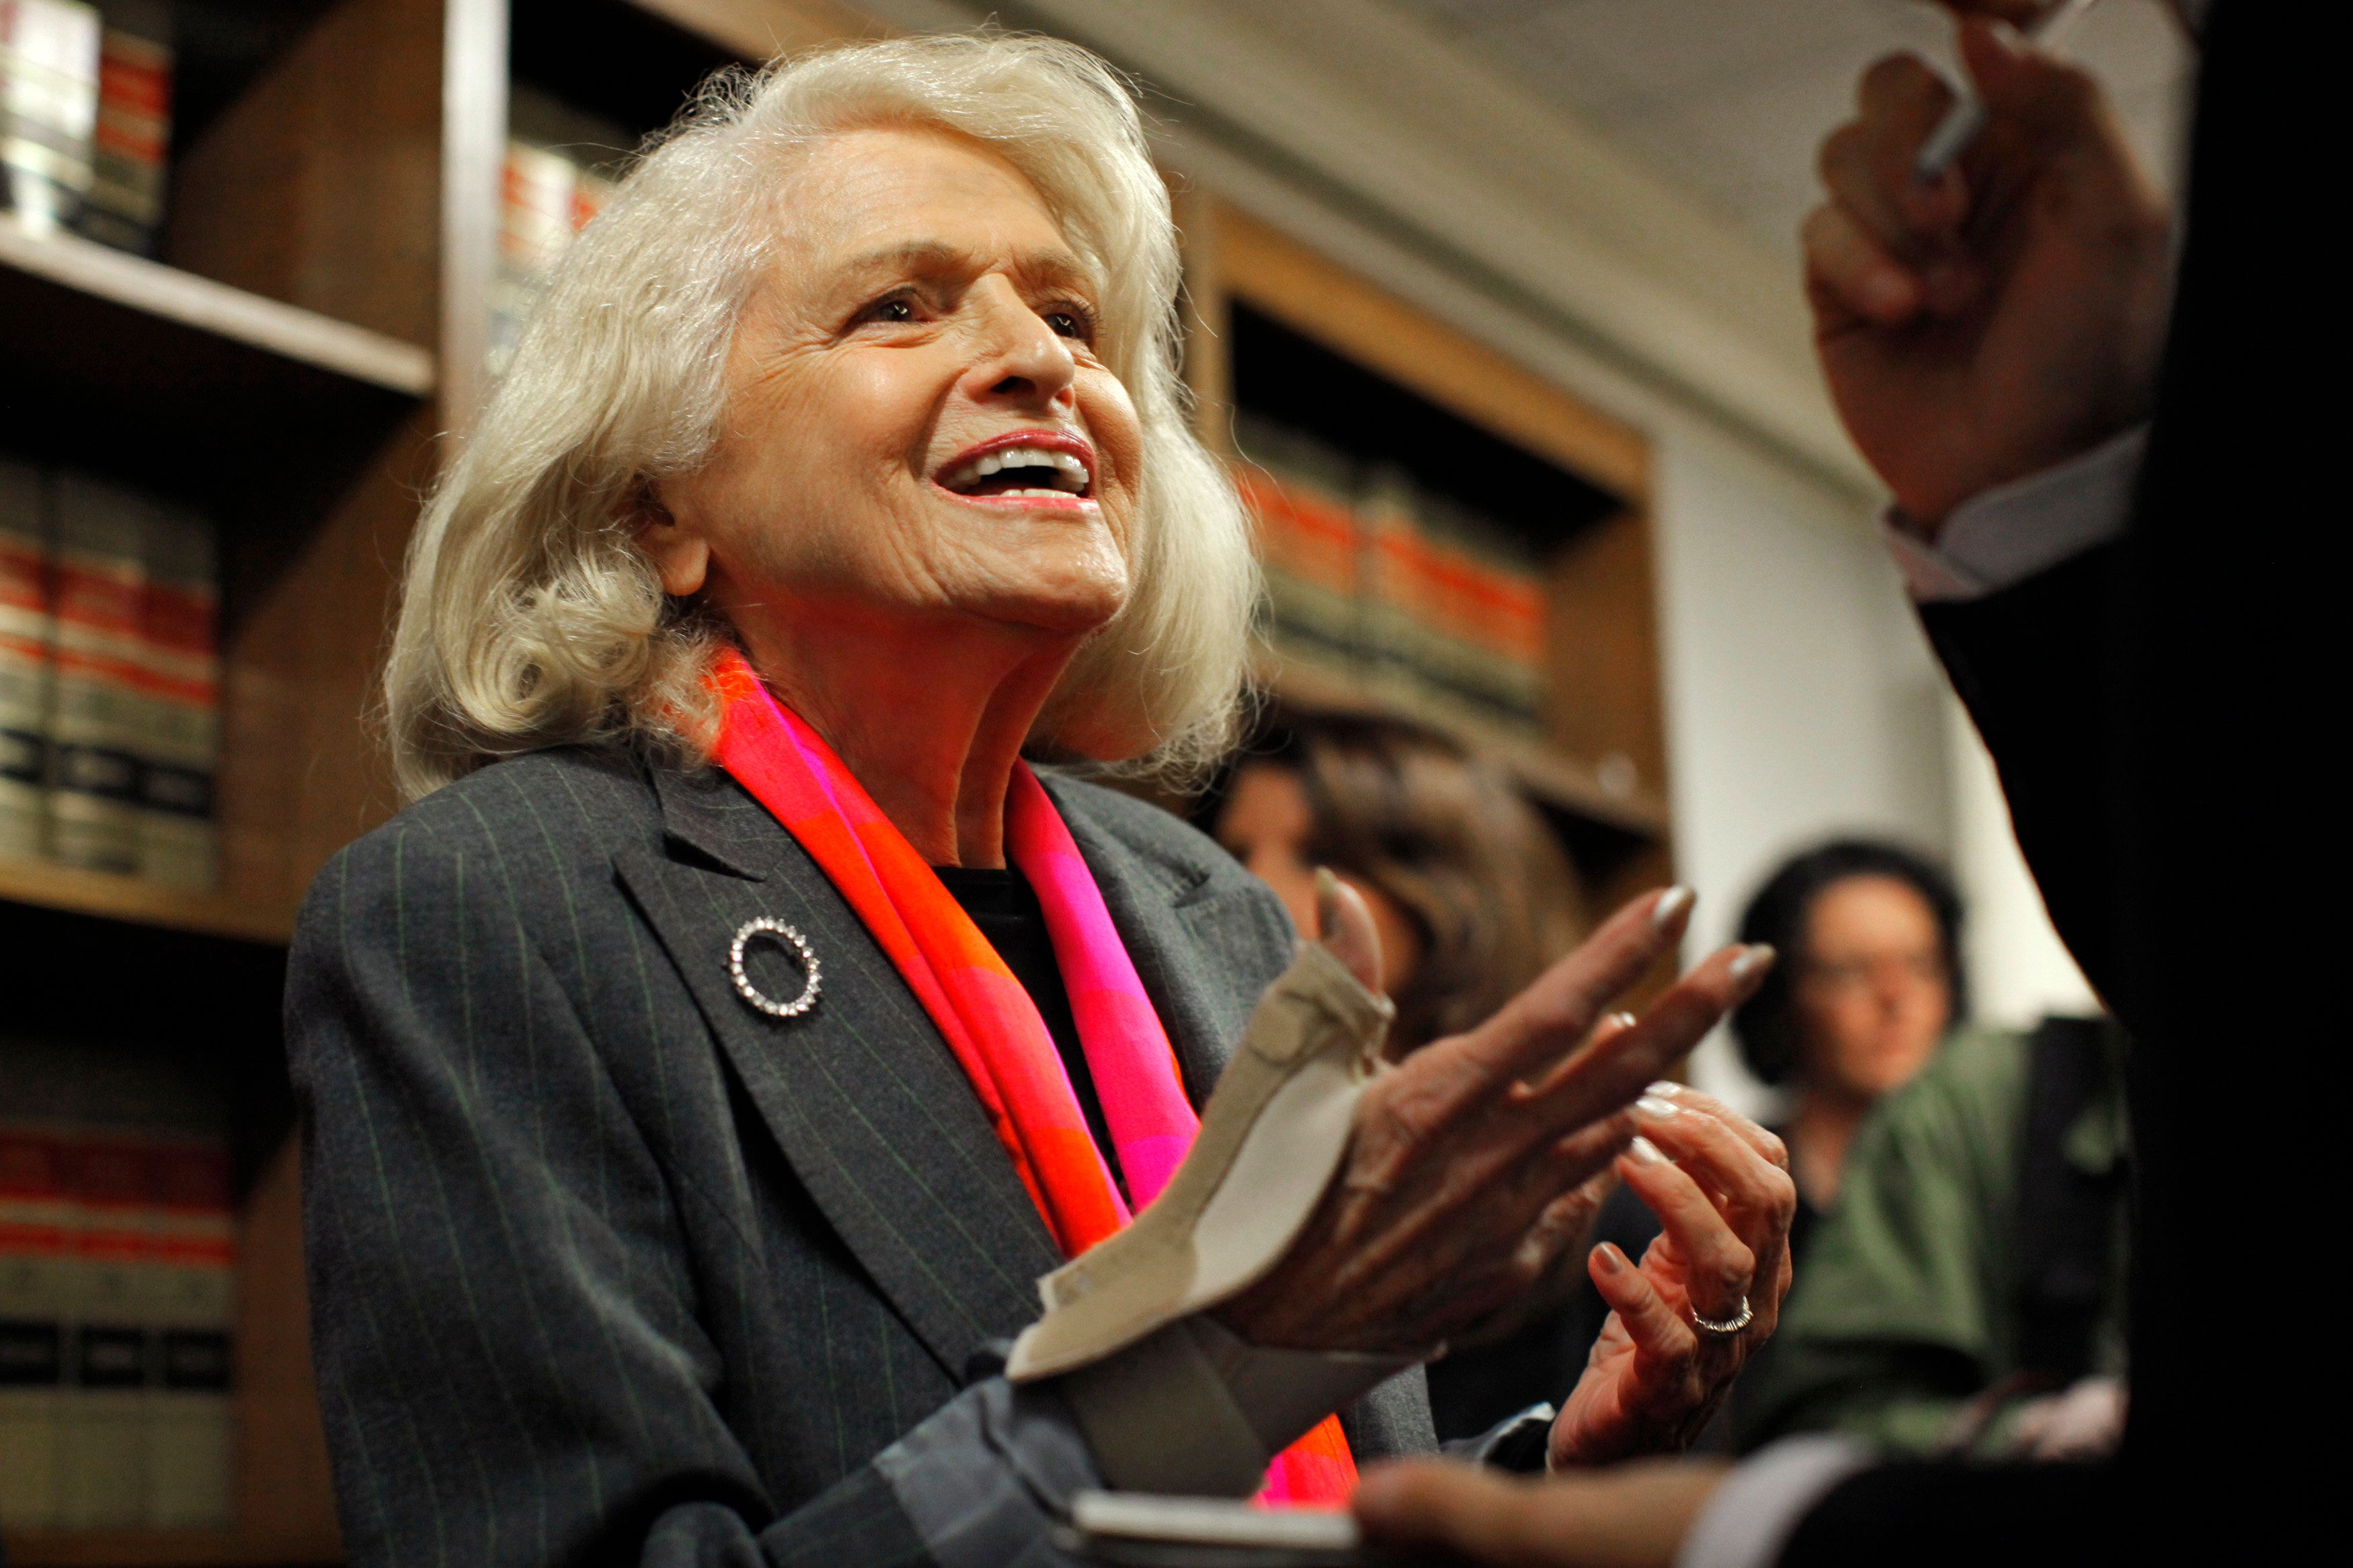 Edith Windsor, an 83-year-old woman who says the Defense of Marriage Act discriminates against gay couples in violation of the U.S. Constitution, speaks to the media during a news conference in New York October 18, 2012. A U.S. appeals court in New York on Thursday ruled that a U.S. law defining marriage as a union between a man and a woman unconstitutionally denies federal benefits to lawfully married same-sex couples. REUTERS/Eduardo Munoz (UNITED STATES - Tags: POLITICS SOCIETY)